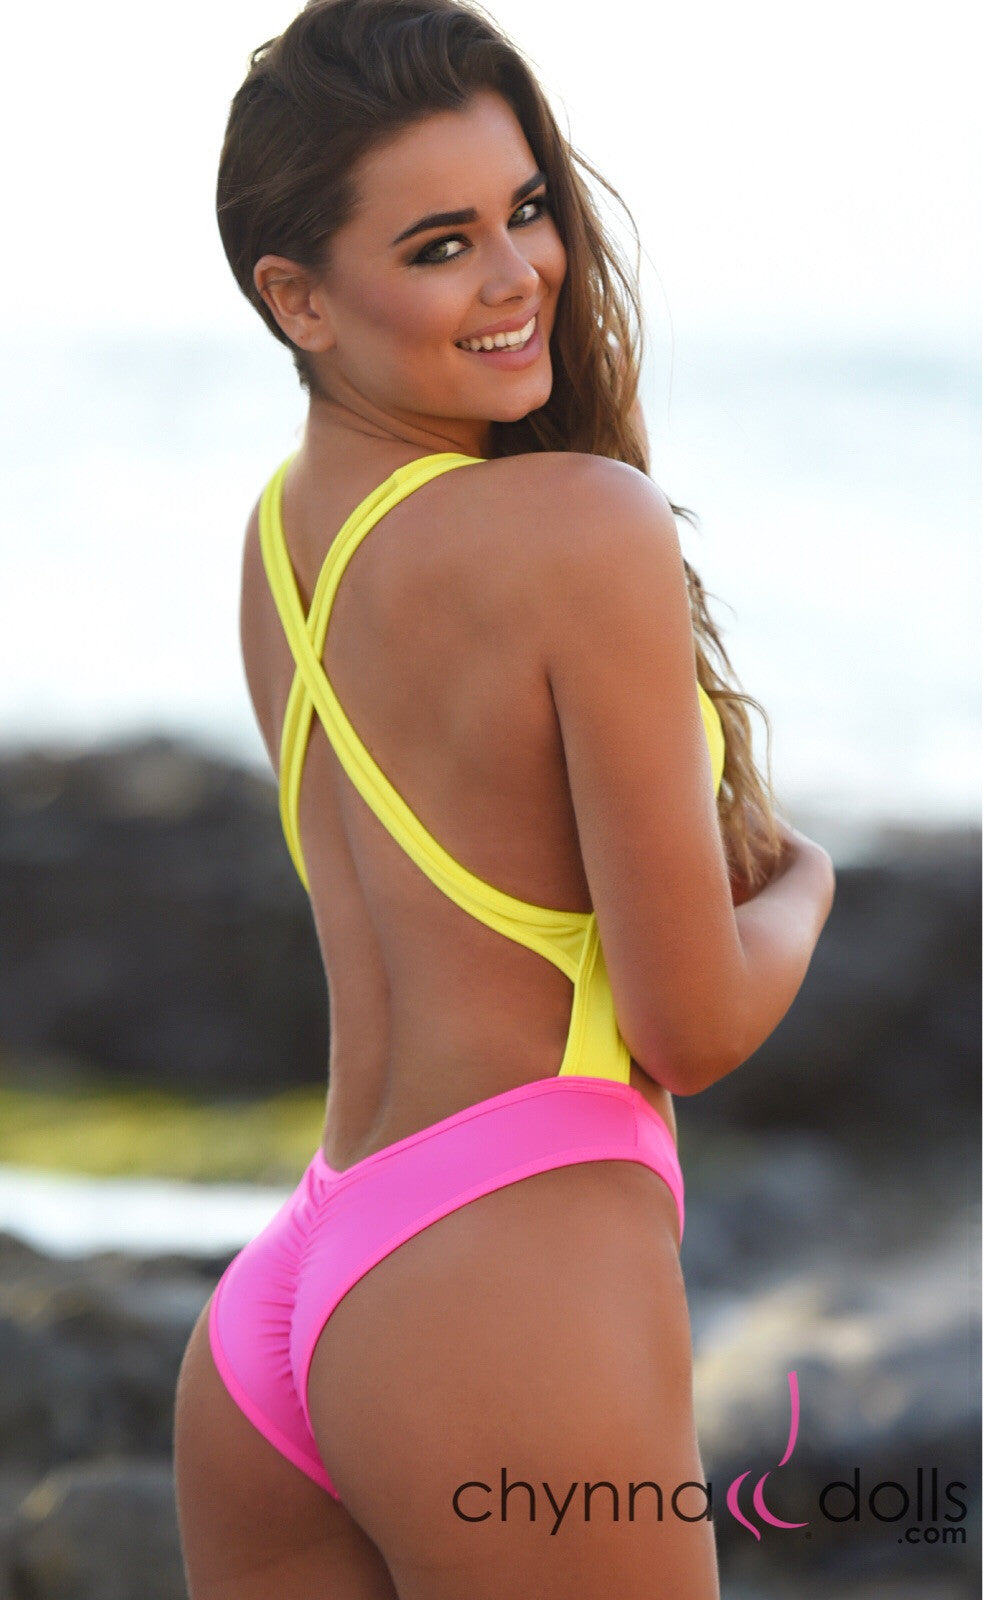 f3730ef01ac9d Verona color block inspired high cut swimsuit in yellow neon chynna dolls  jpg 983x1600 Neon 80s